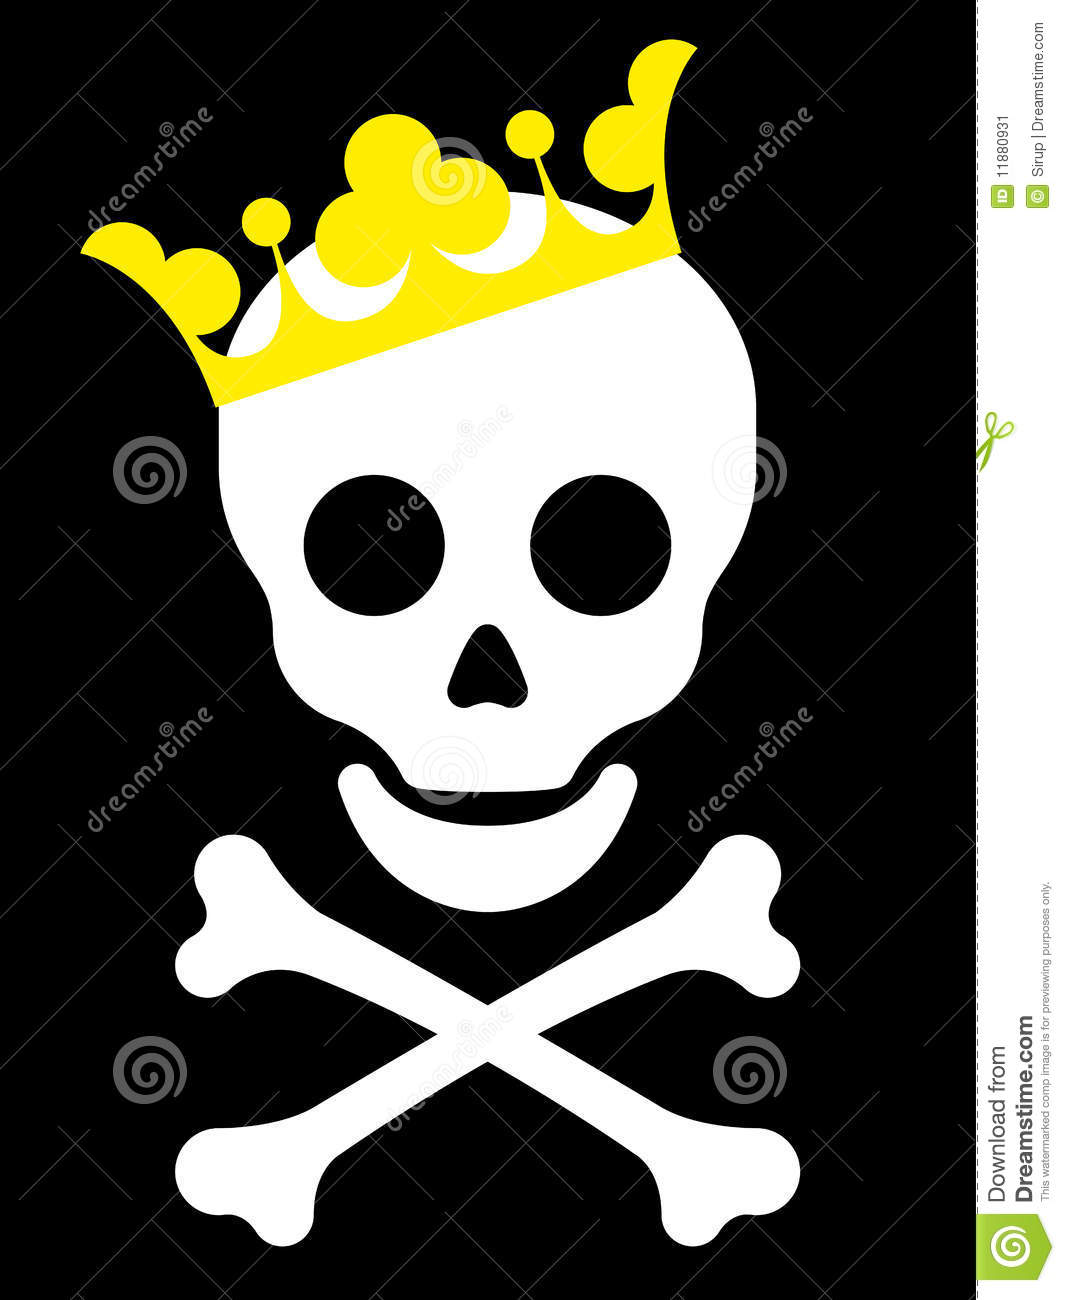 Skull with yellow crown